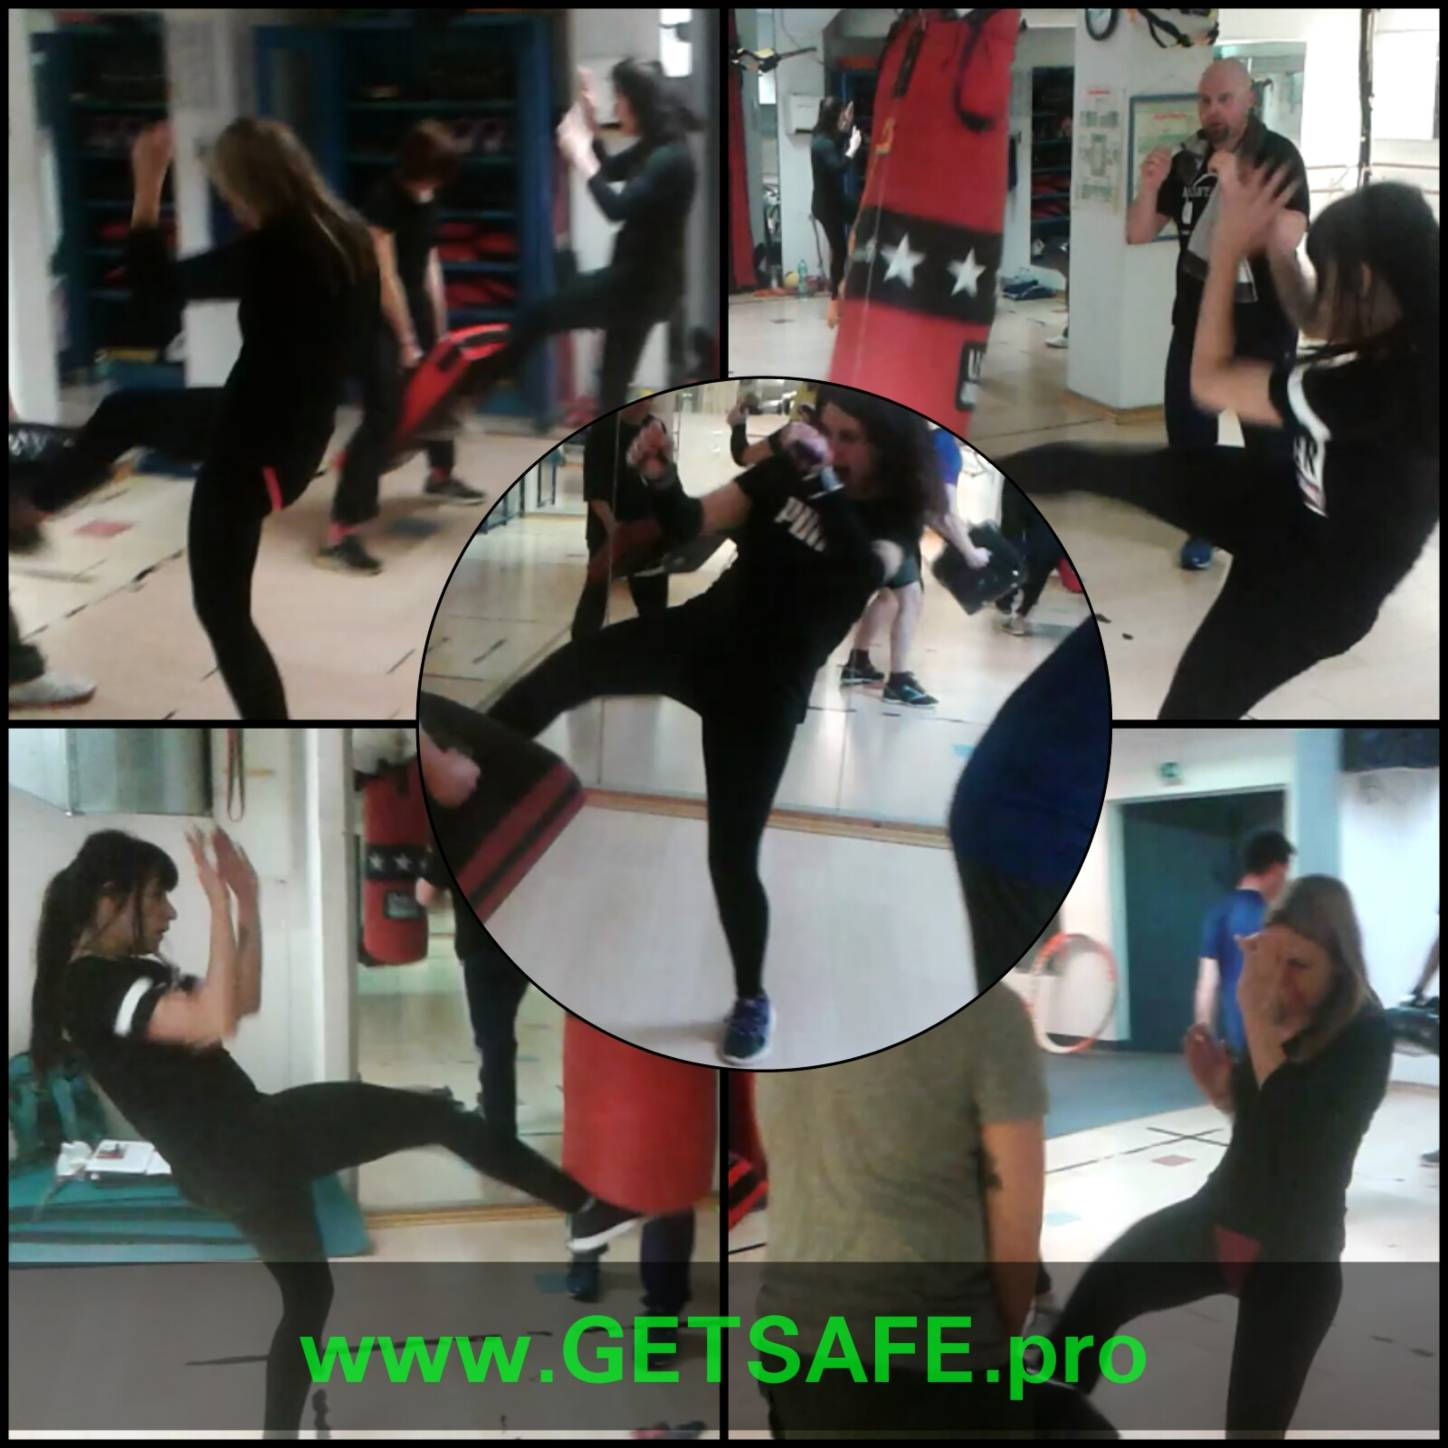 GETSAFEpro Krav Maga Training Mainz Selbstverteidigung Fitness-Center Mainz City (1)